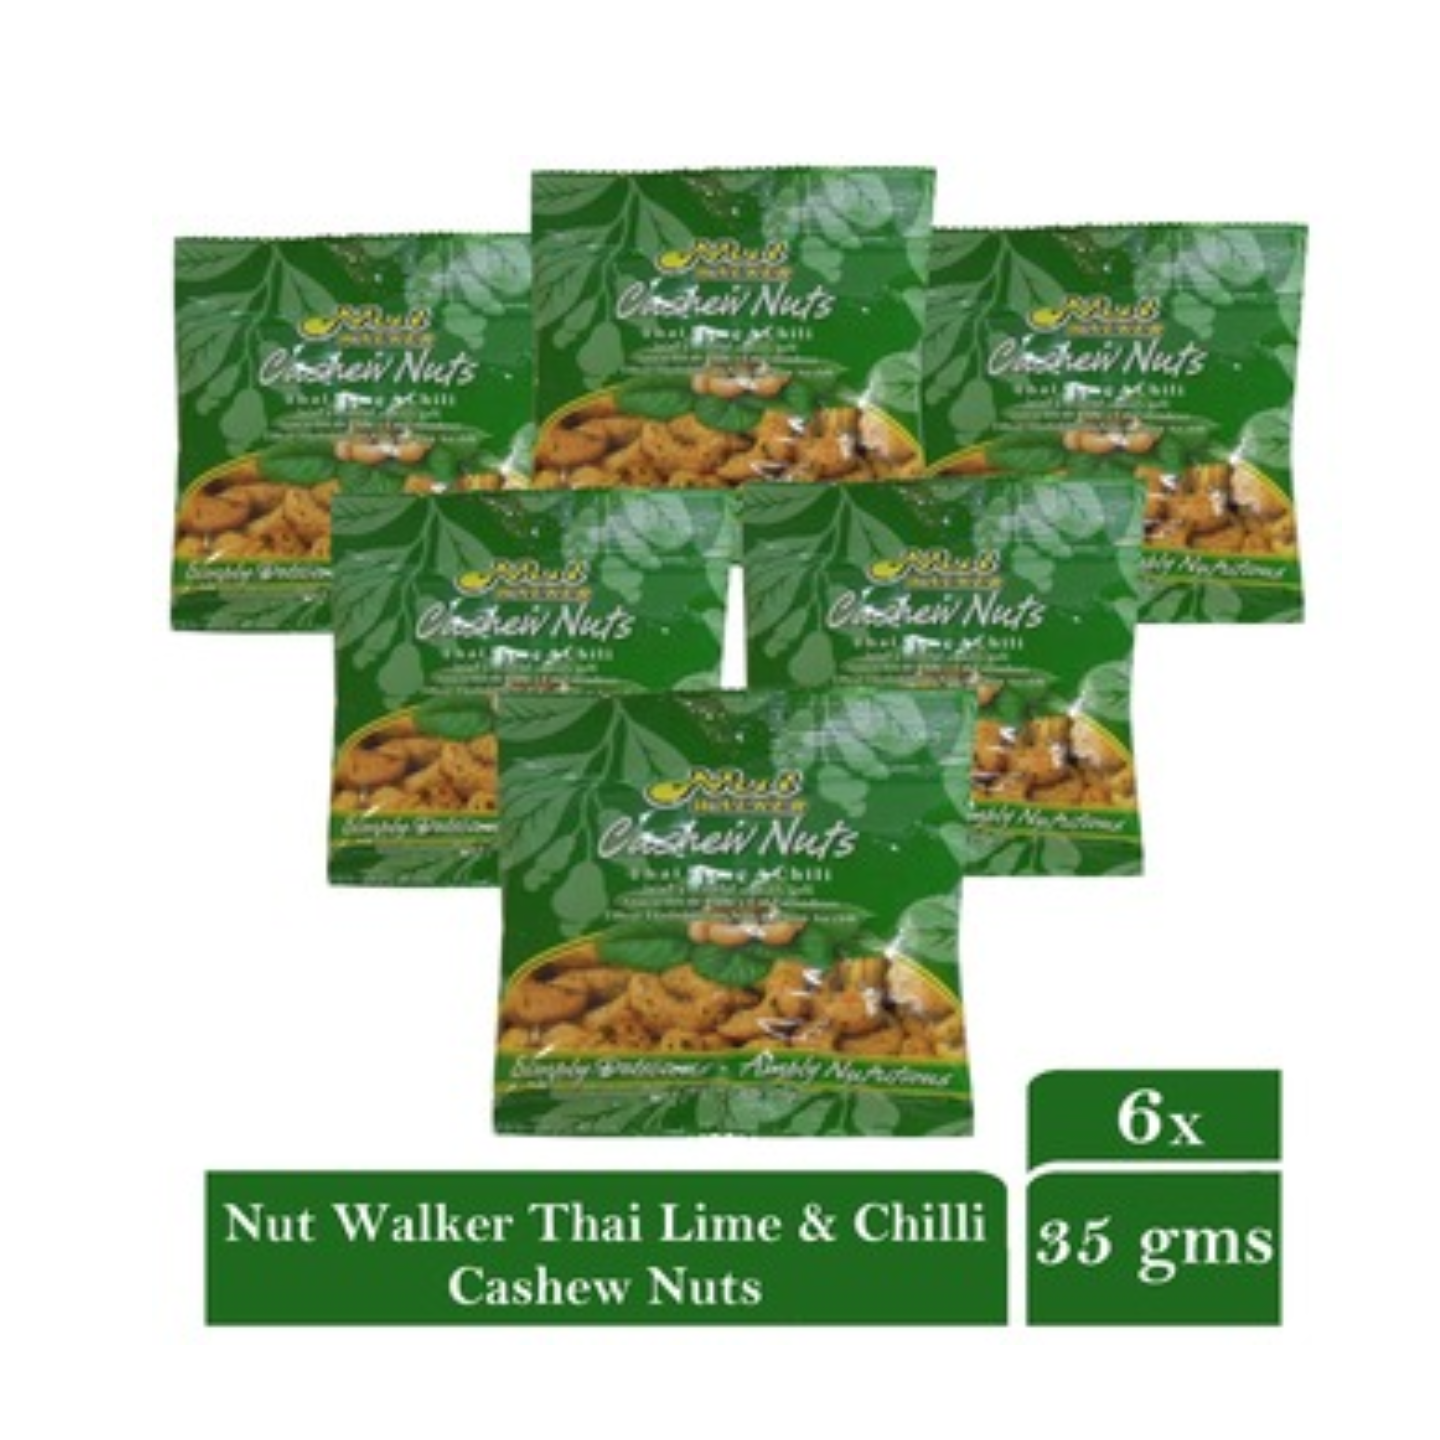 Nut Walker Thai Lime And Chili Cashew Nuts 6 x 35gm